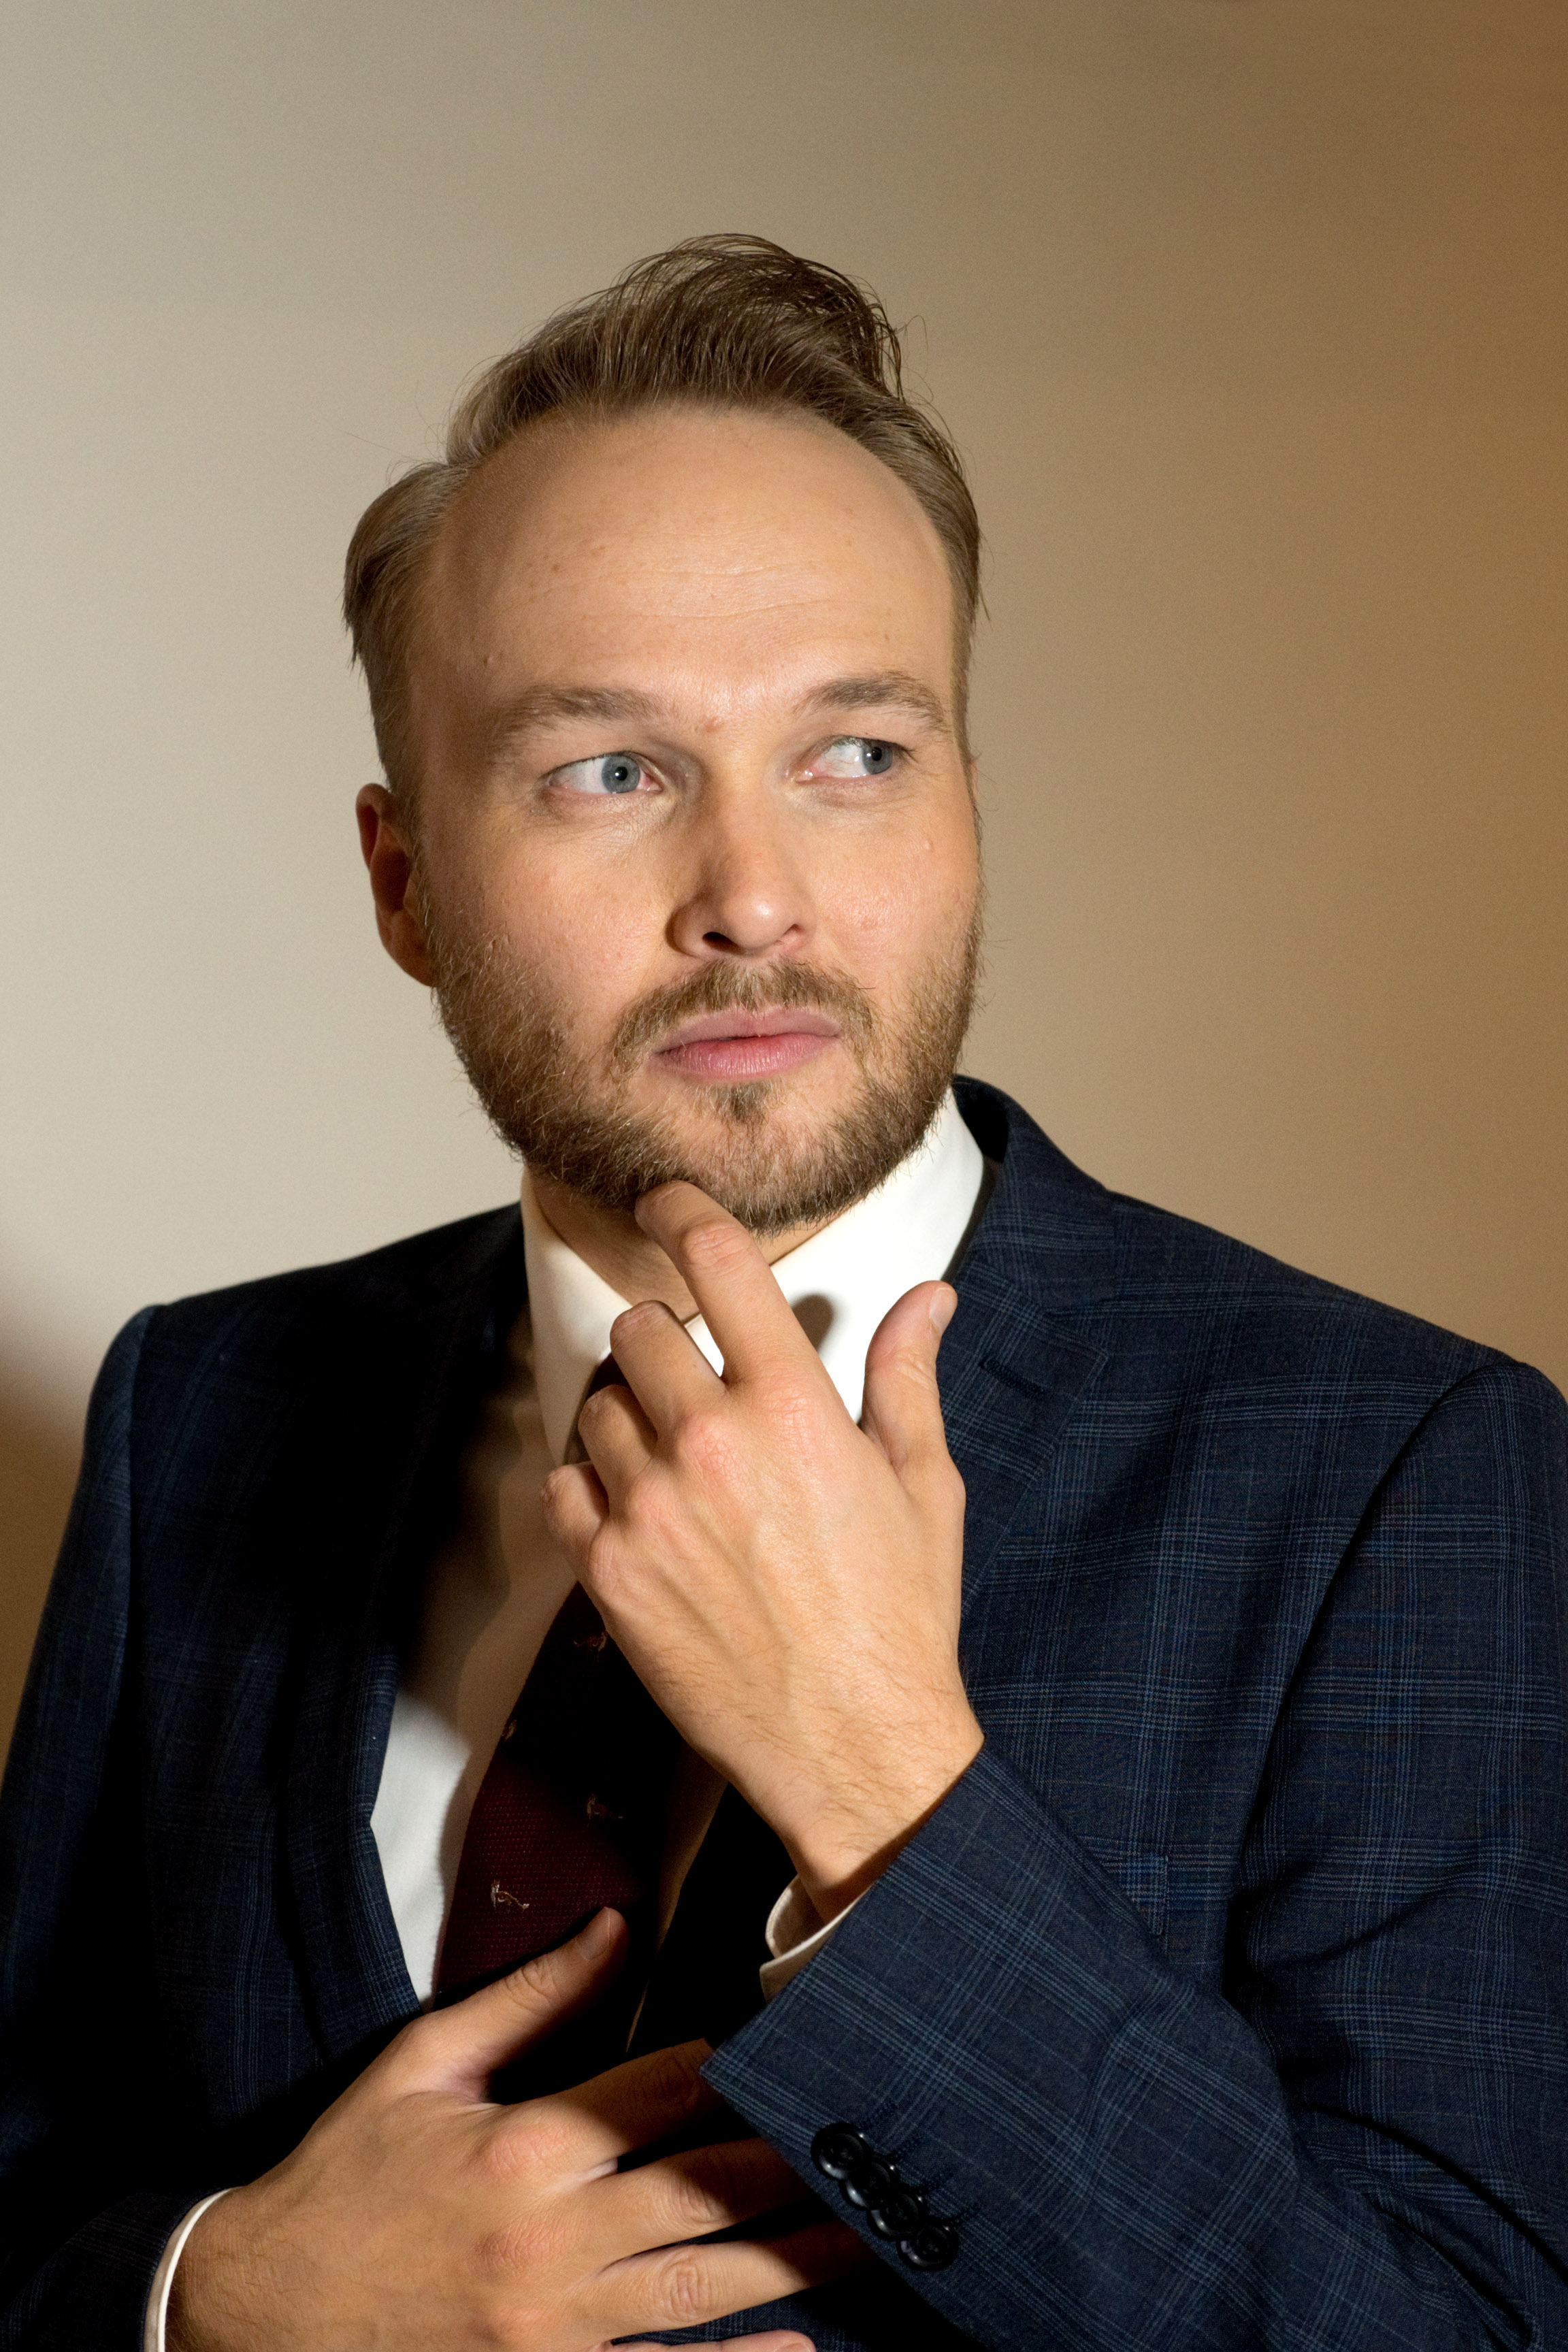 The 38-year old son of father (?) and mother(?) Arjen Lubach in 2018 photo. Arjen Lubach earned a  million dollar salary - leaving the net worth at 5 million in 2018